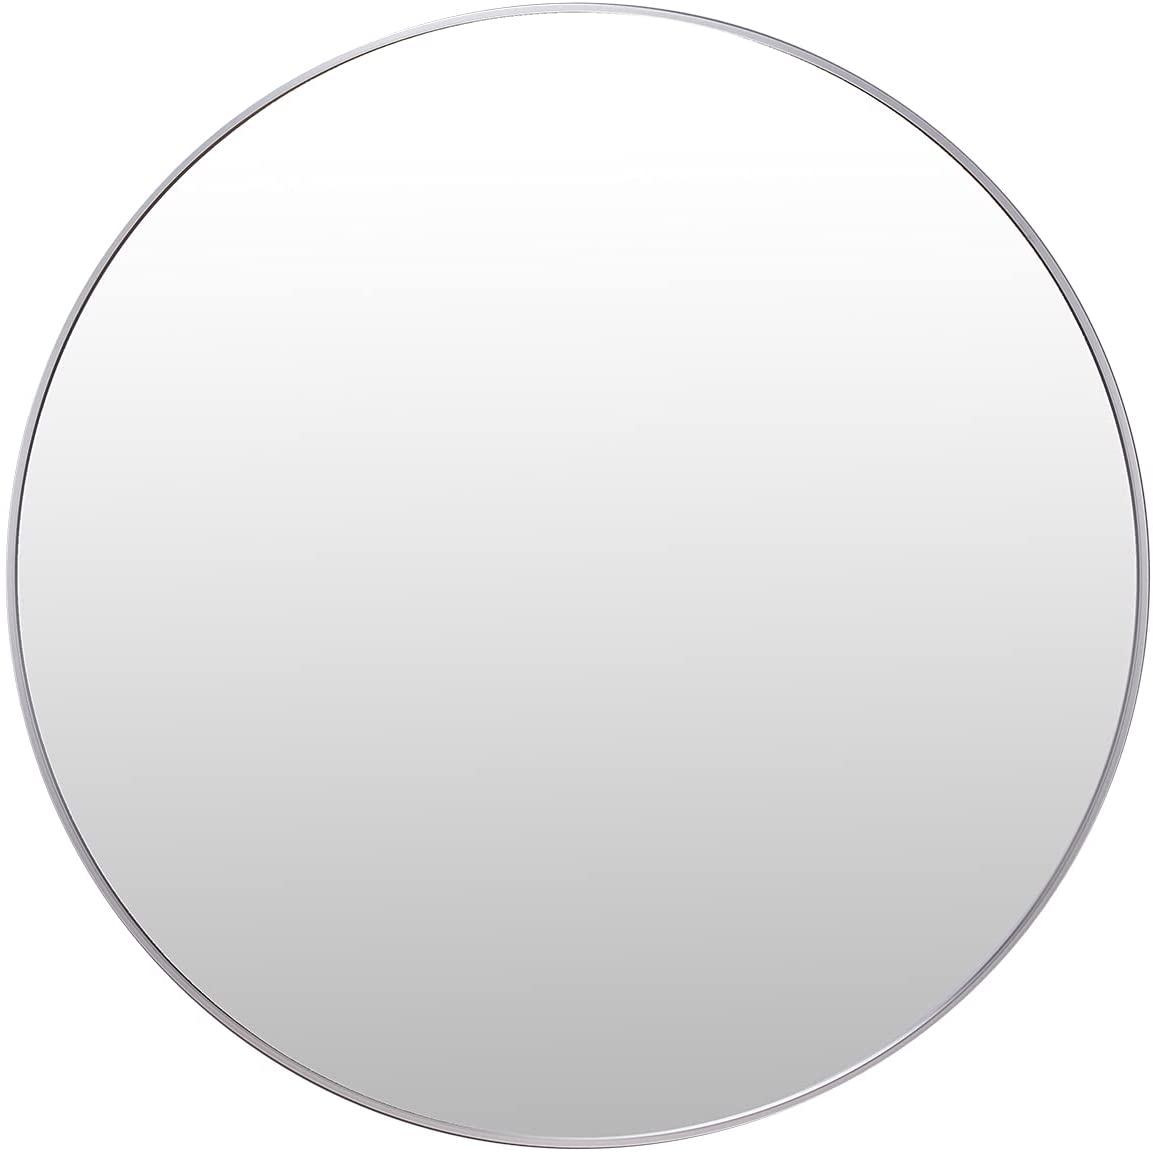 Villacola 36 Inches Round Wall Mirror, Decorative Brushed Aluminium Frame Circle Mirror for Bathroom, Entryway, Washroom, Living Room and More, Silver